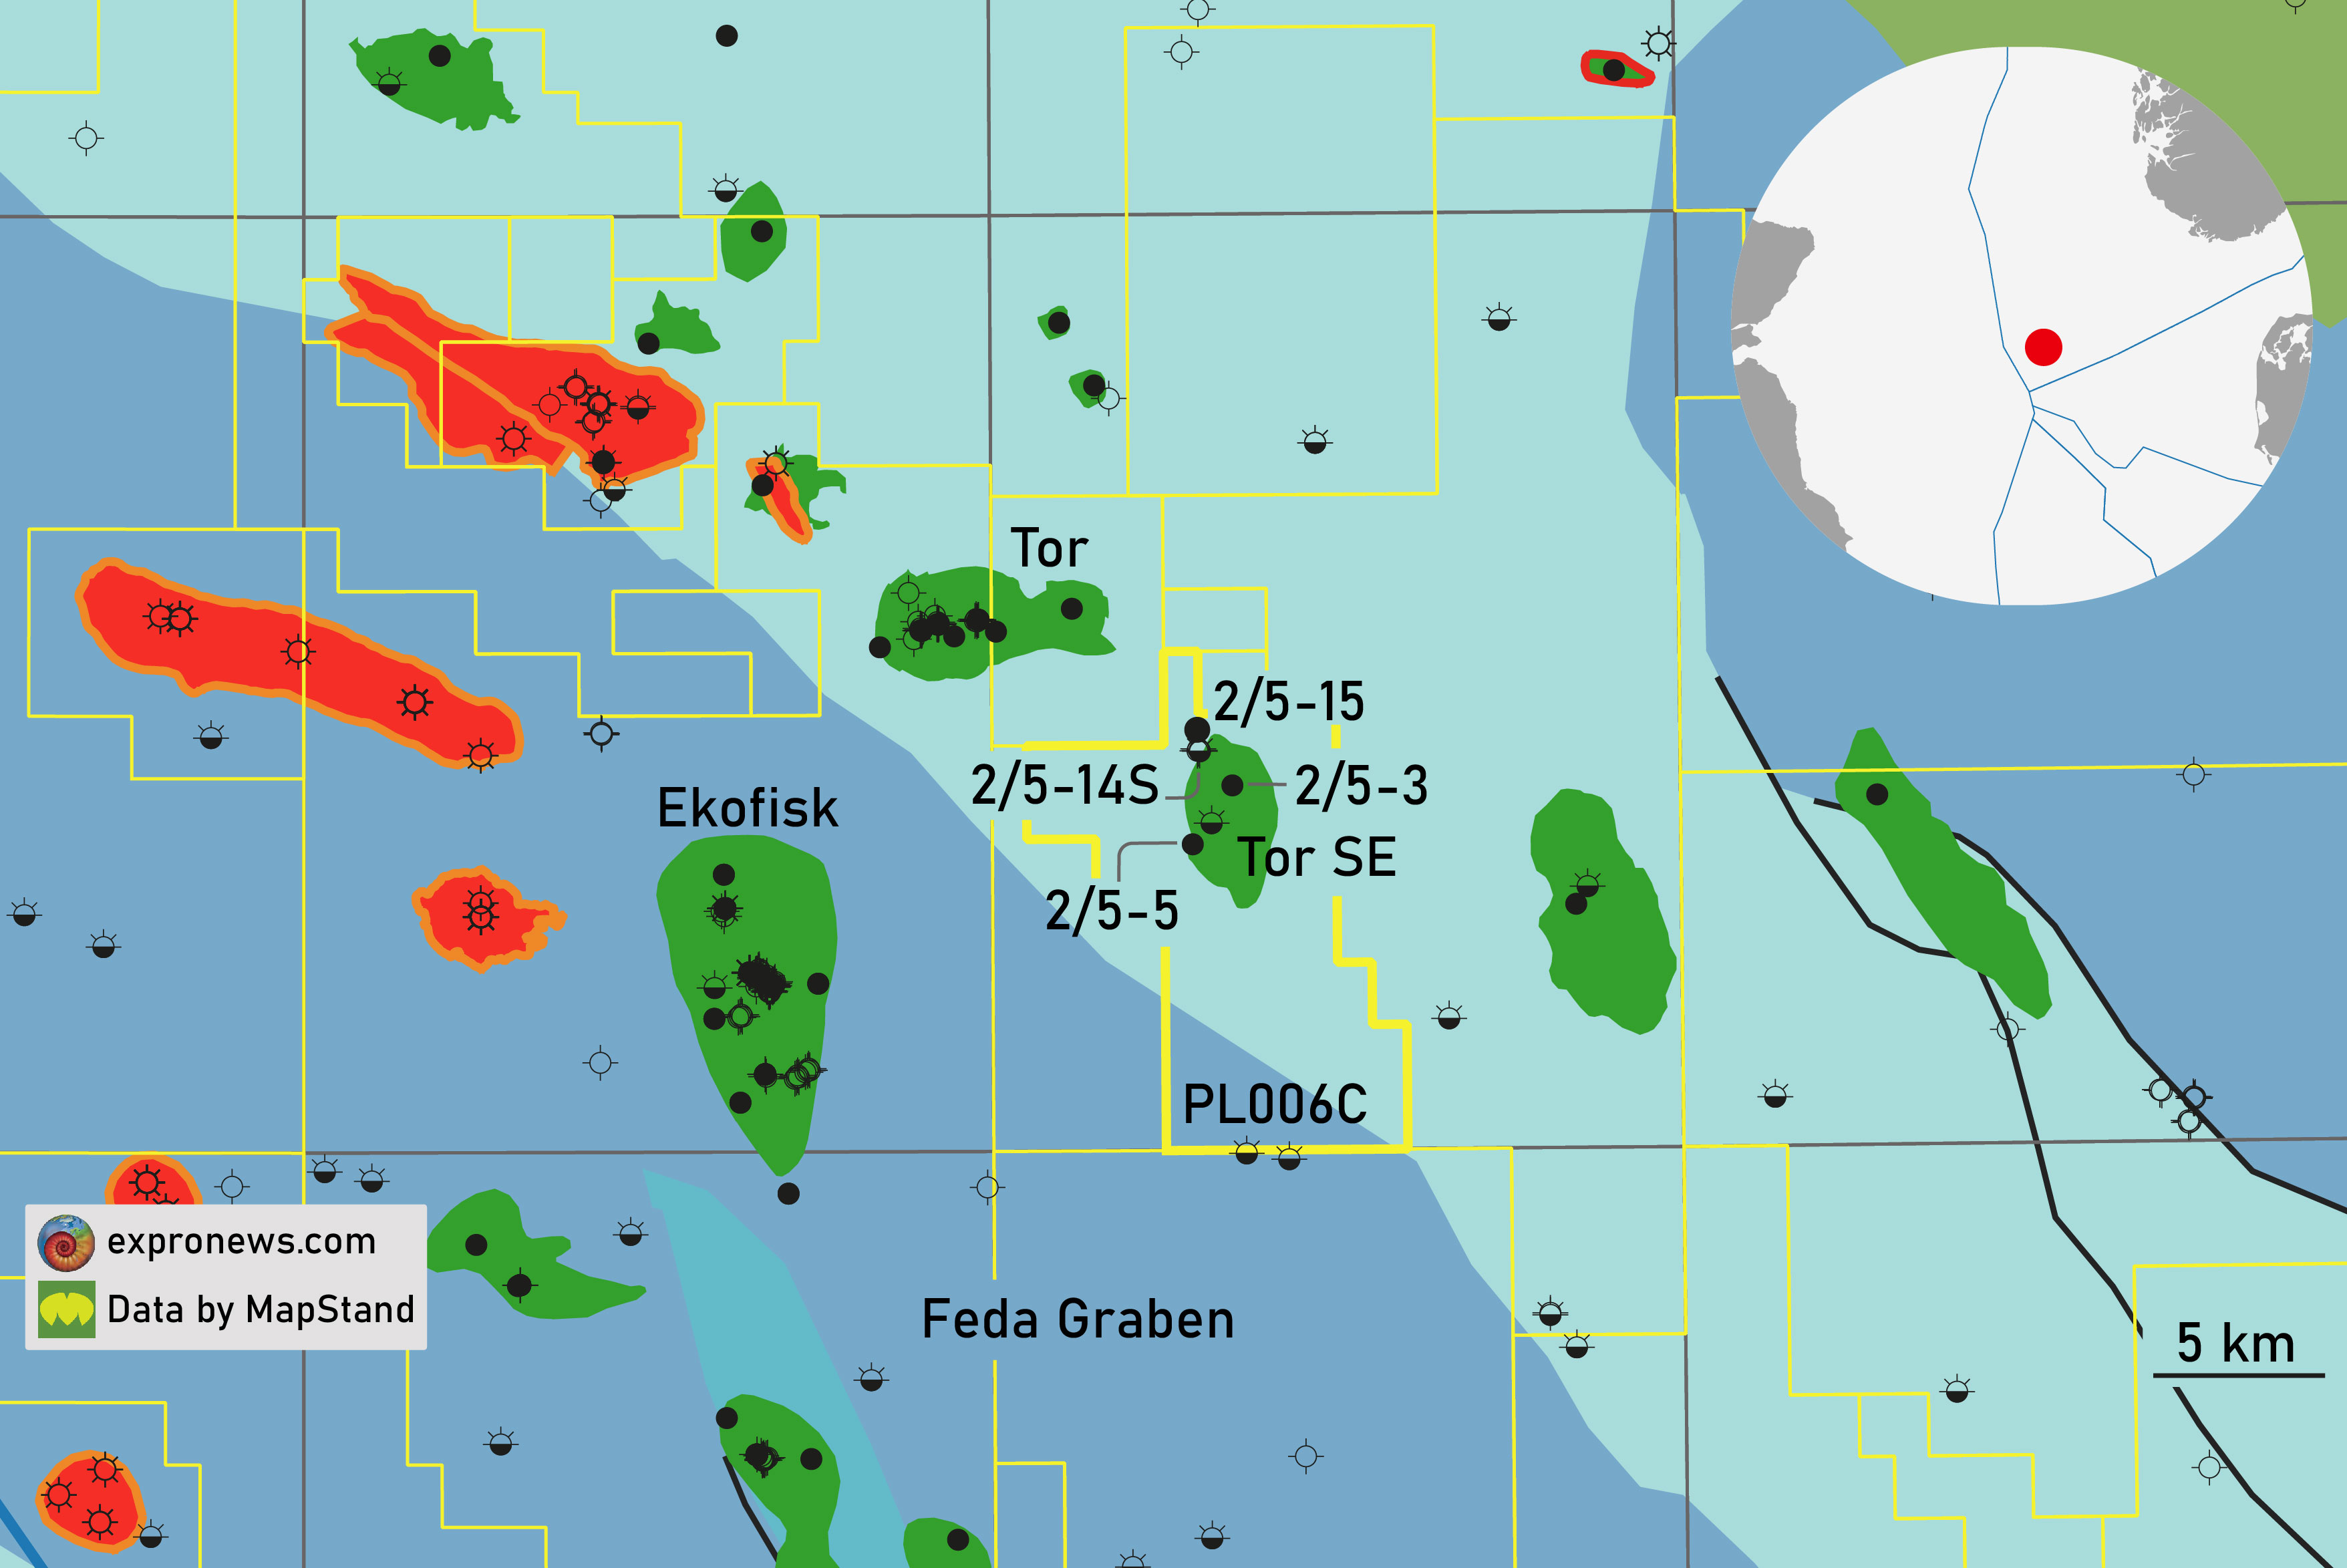 Mixed results for DNO in Southern North Sea drilling campaign